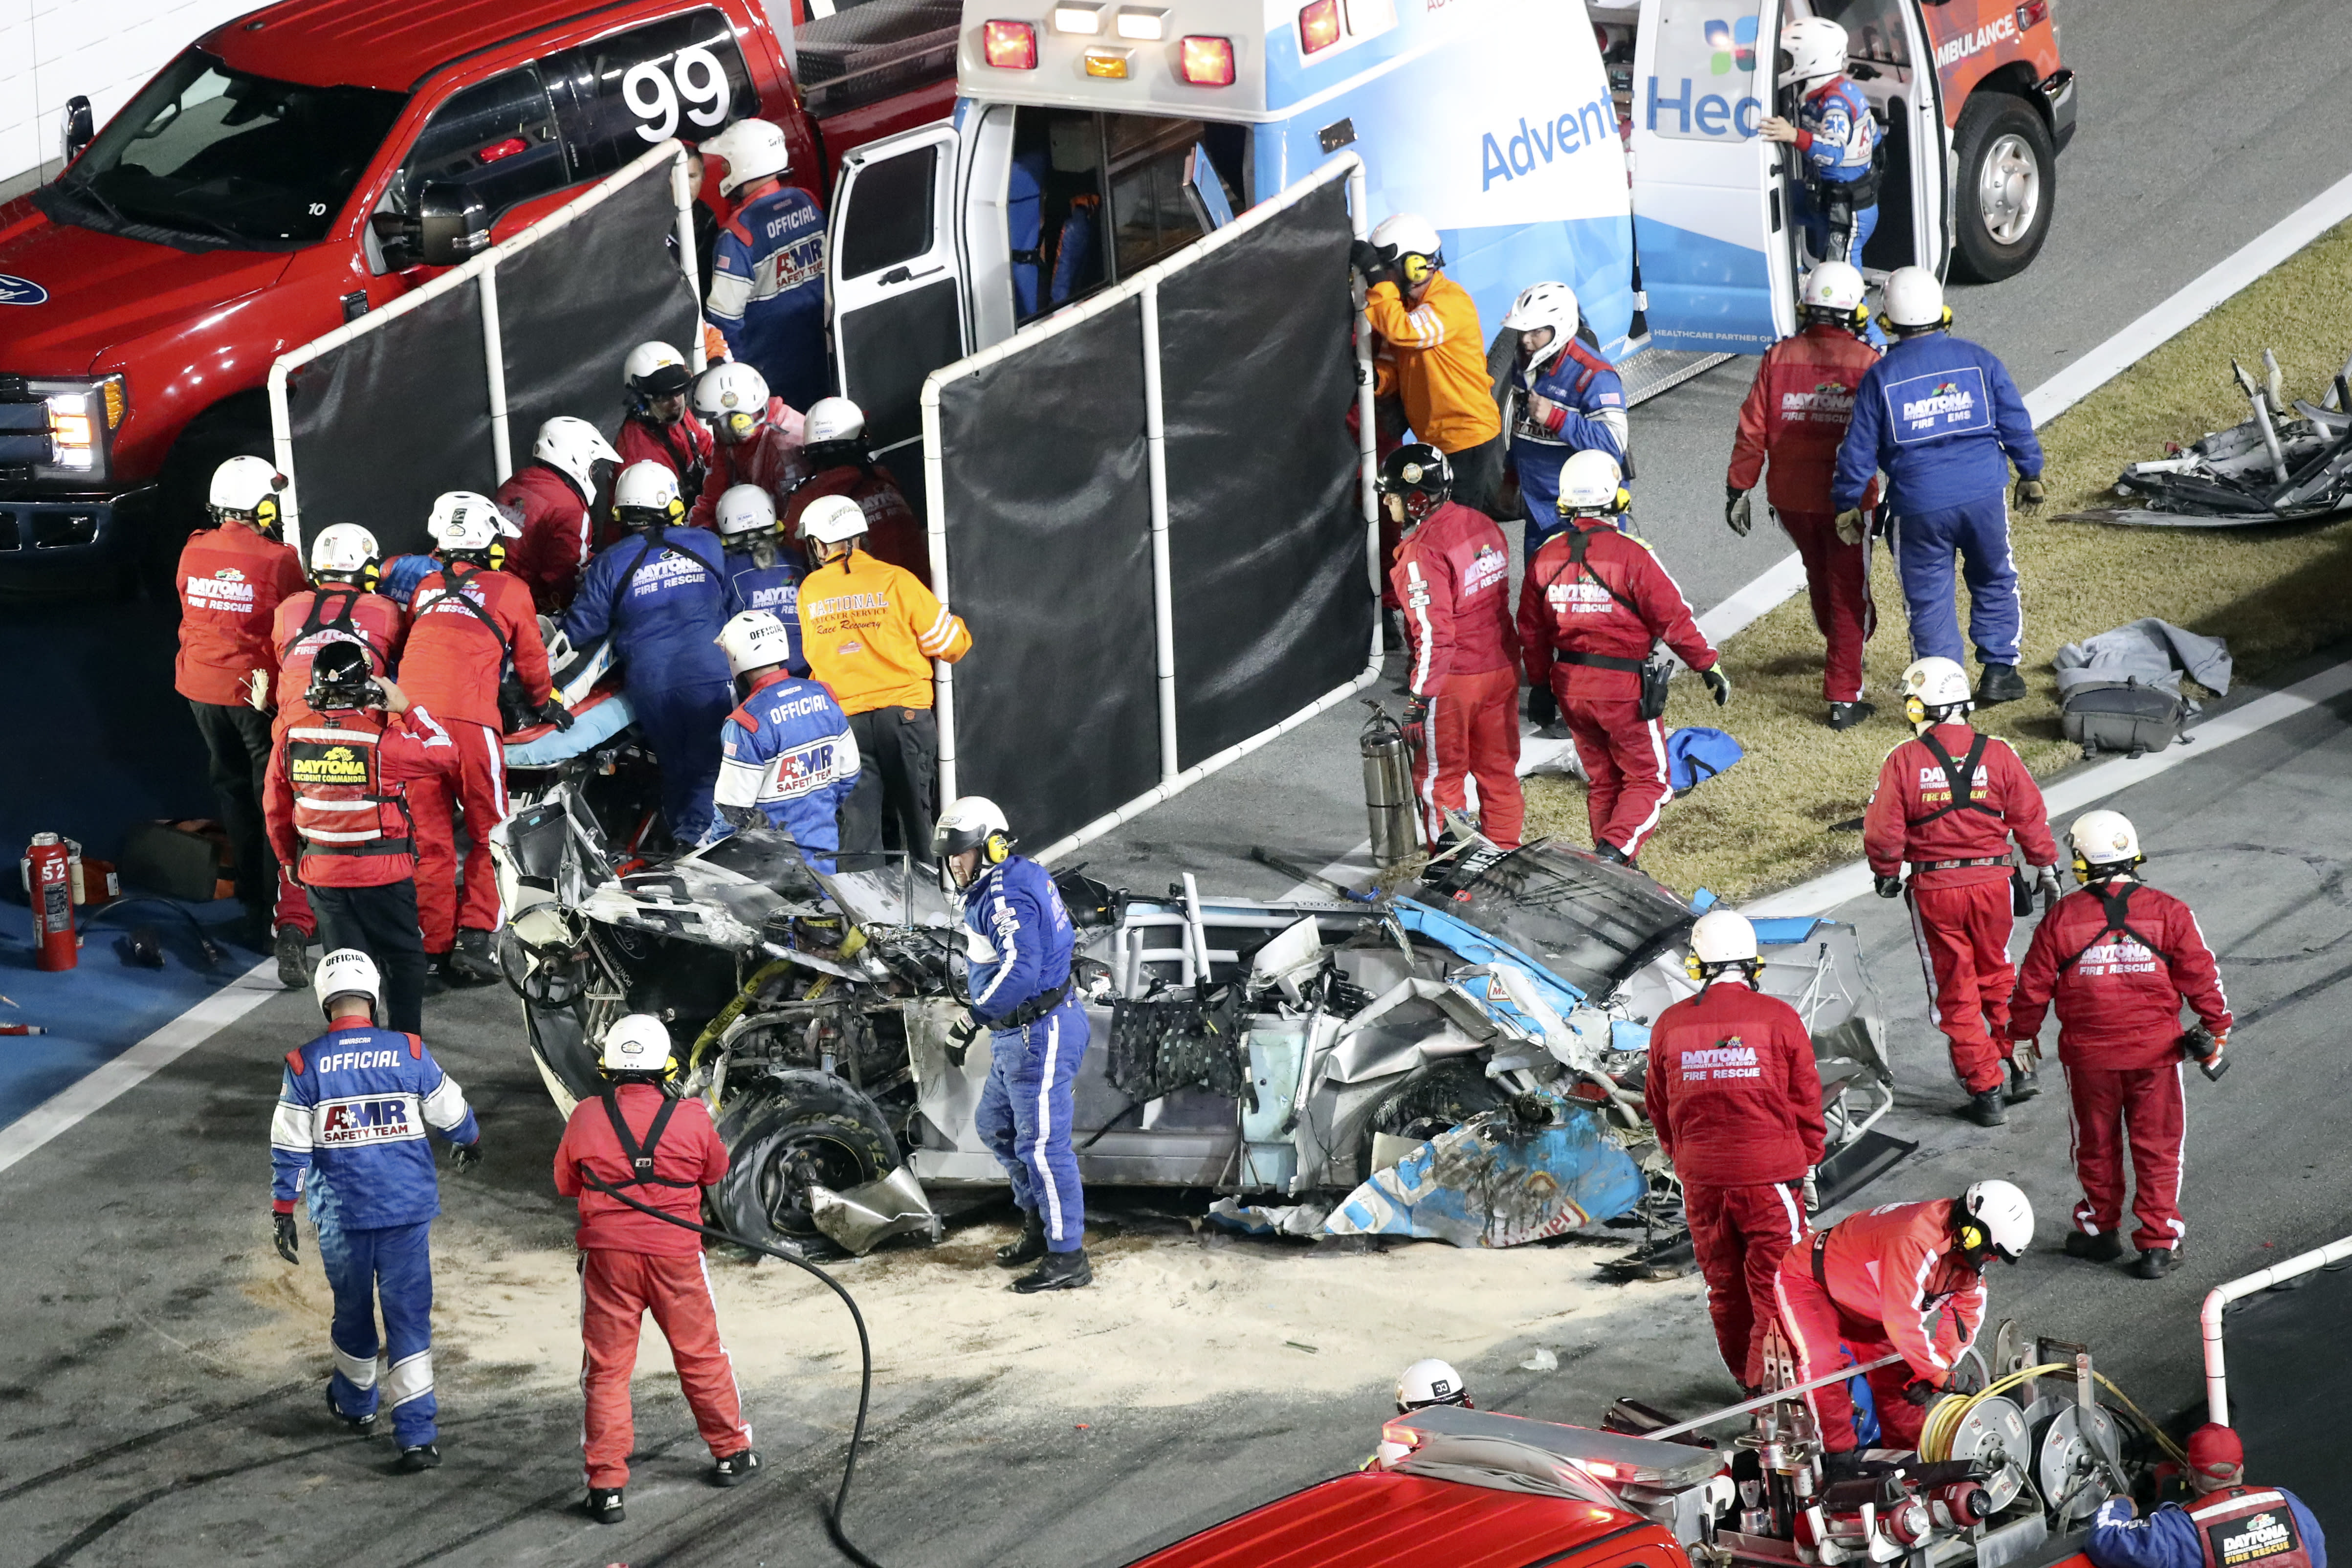 Ryan Newman, left, surrounded by rescue workers is moved to an ambulance after rescue workers removed him from his car after he was involved in a crash on NASCAR Daytona 500 auto race at Daytona International Speedway, Monday, Feb. 17, 2020, in Daytona Beach, Fla. Sunday's race was postponed because of rain. (AP Photo/David Graham)